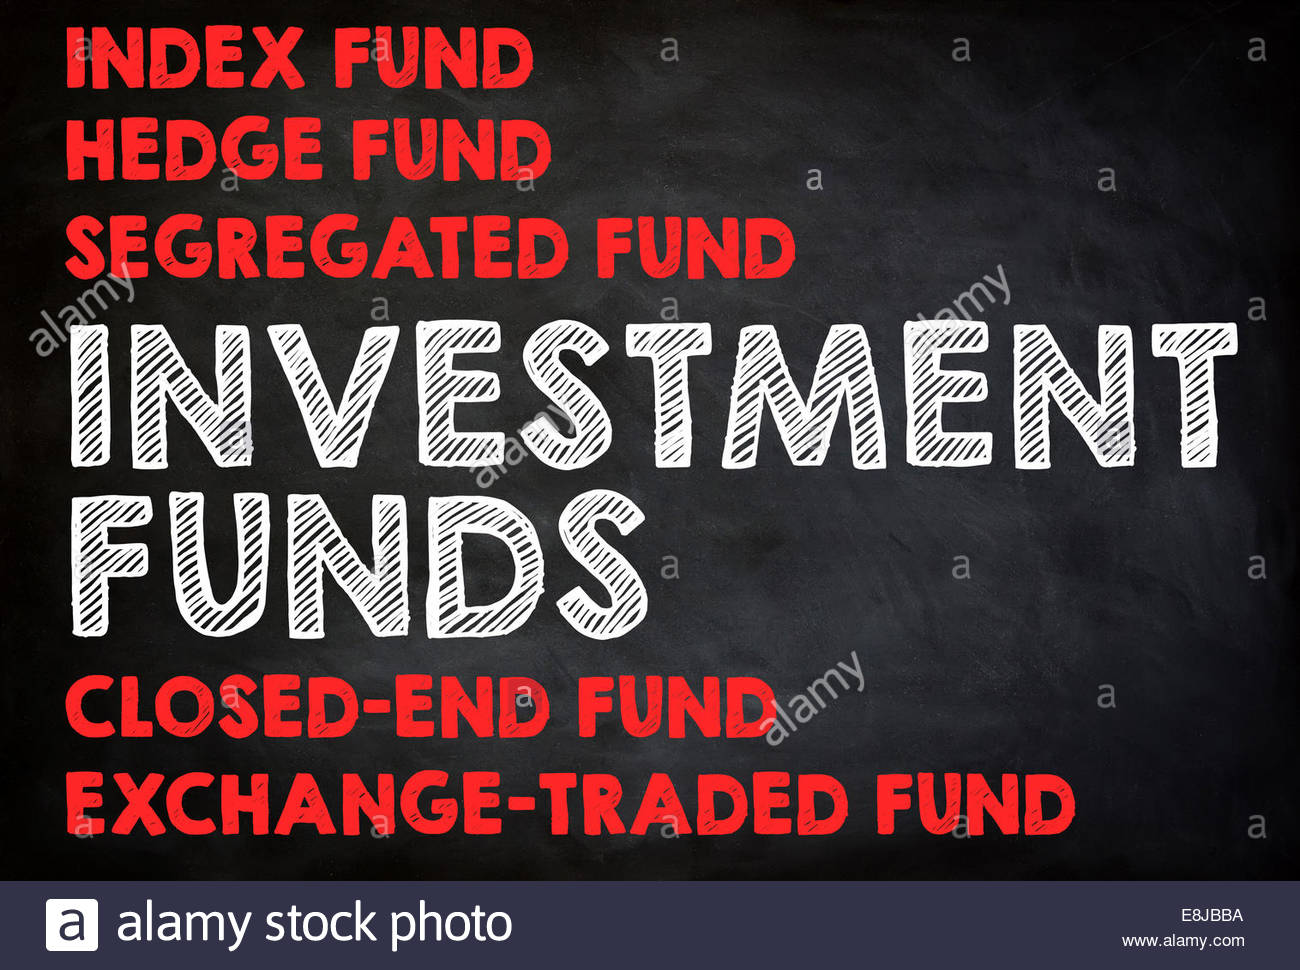 INVESTMENT FUNDS - chalkboard concept - Stock Image